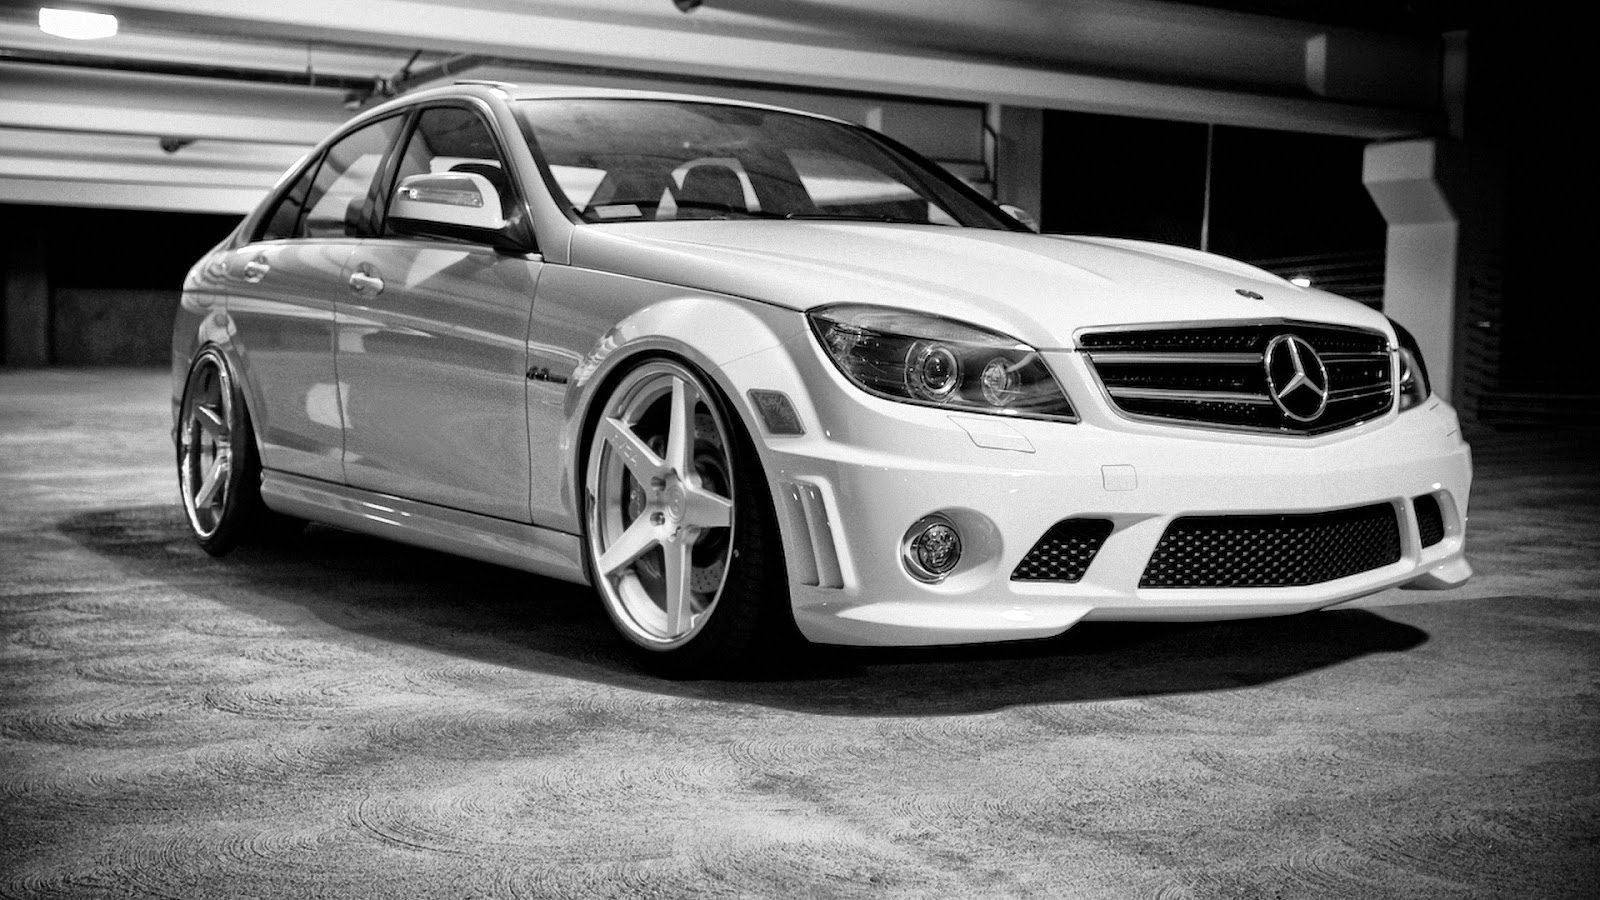 Mercedes benz tuning wallpapers benztuning for Mercedes benz cars photos